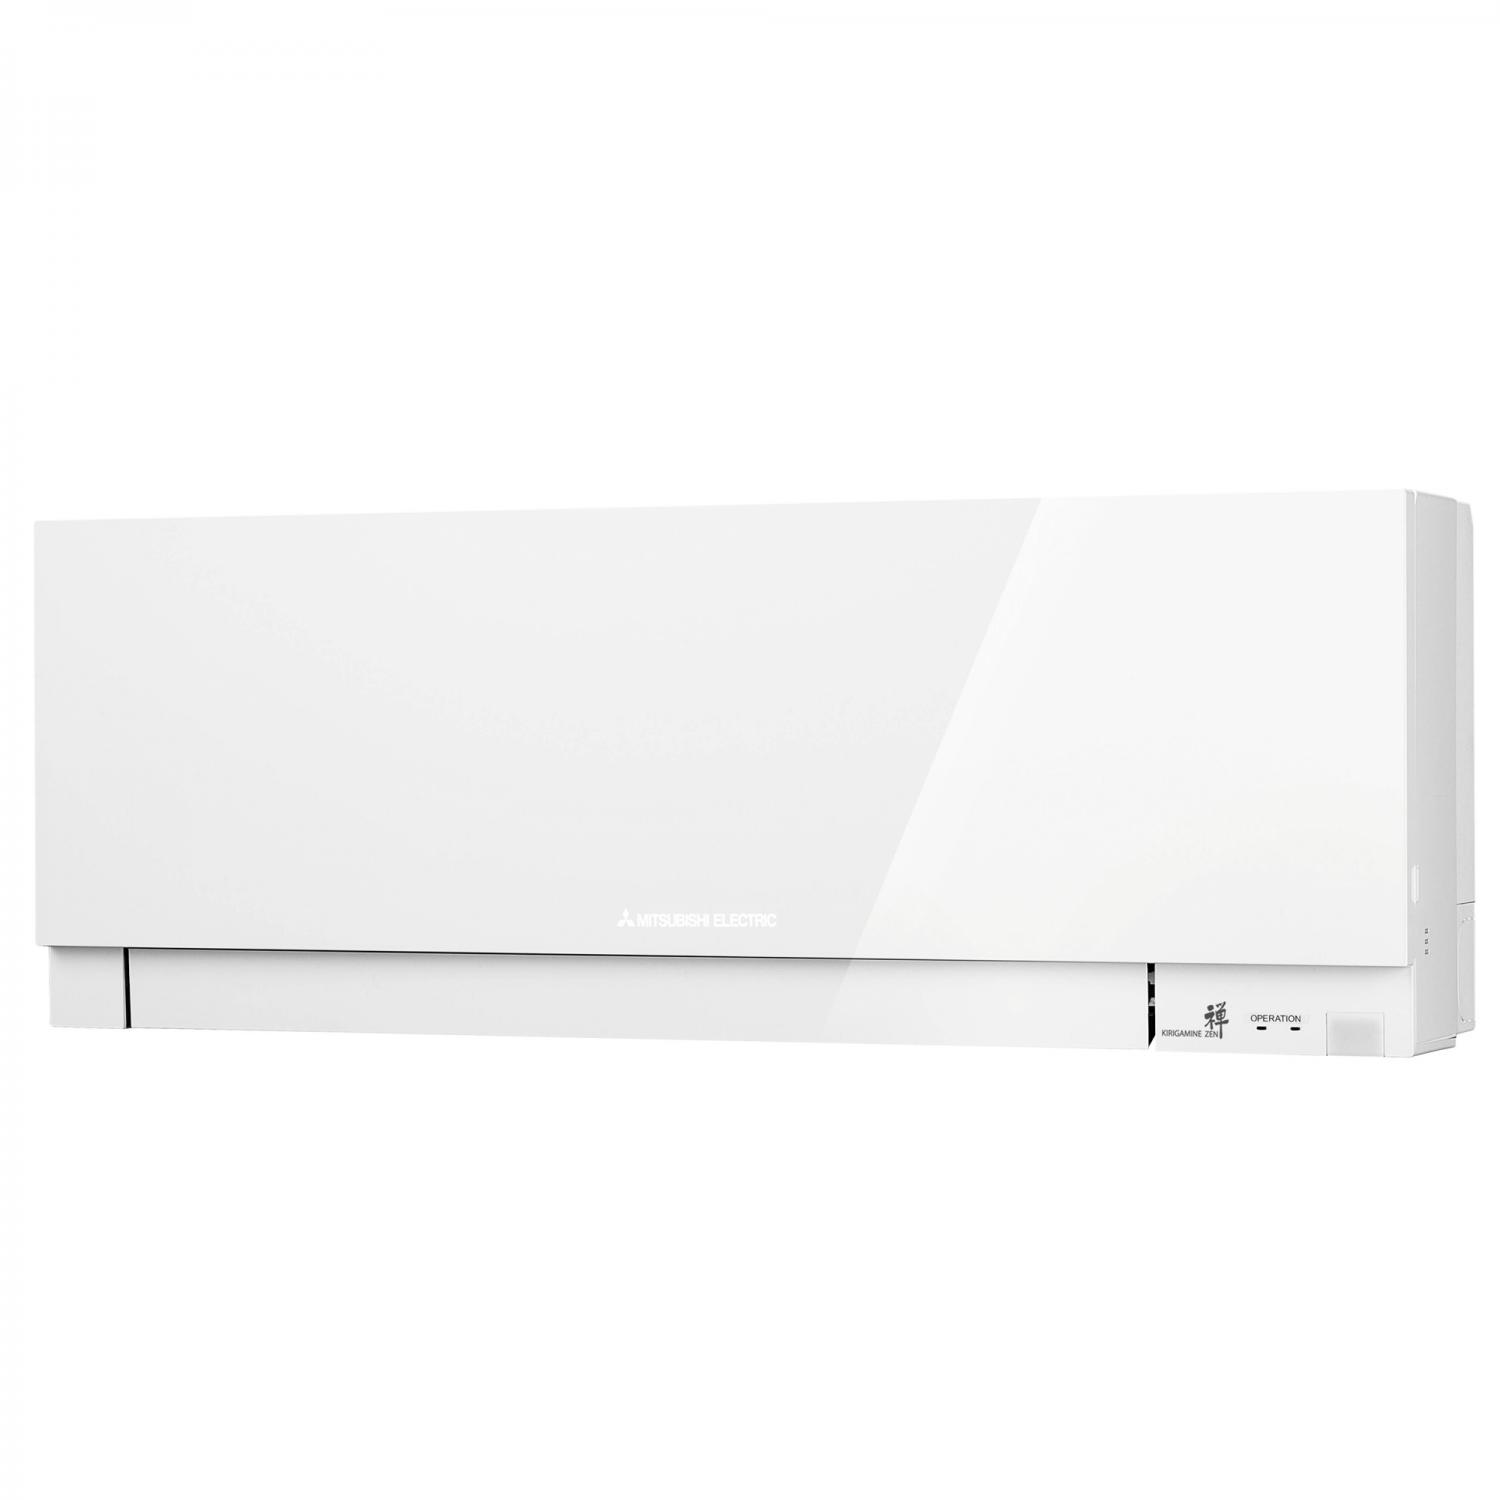 Mitsubishi MSZEF42VE2WKIT Air Conditioner